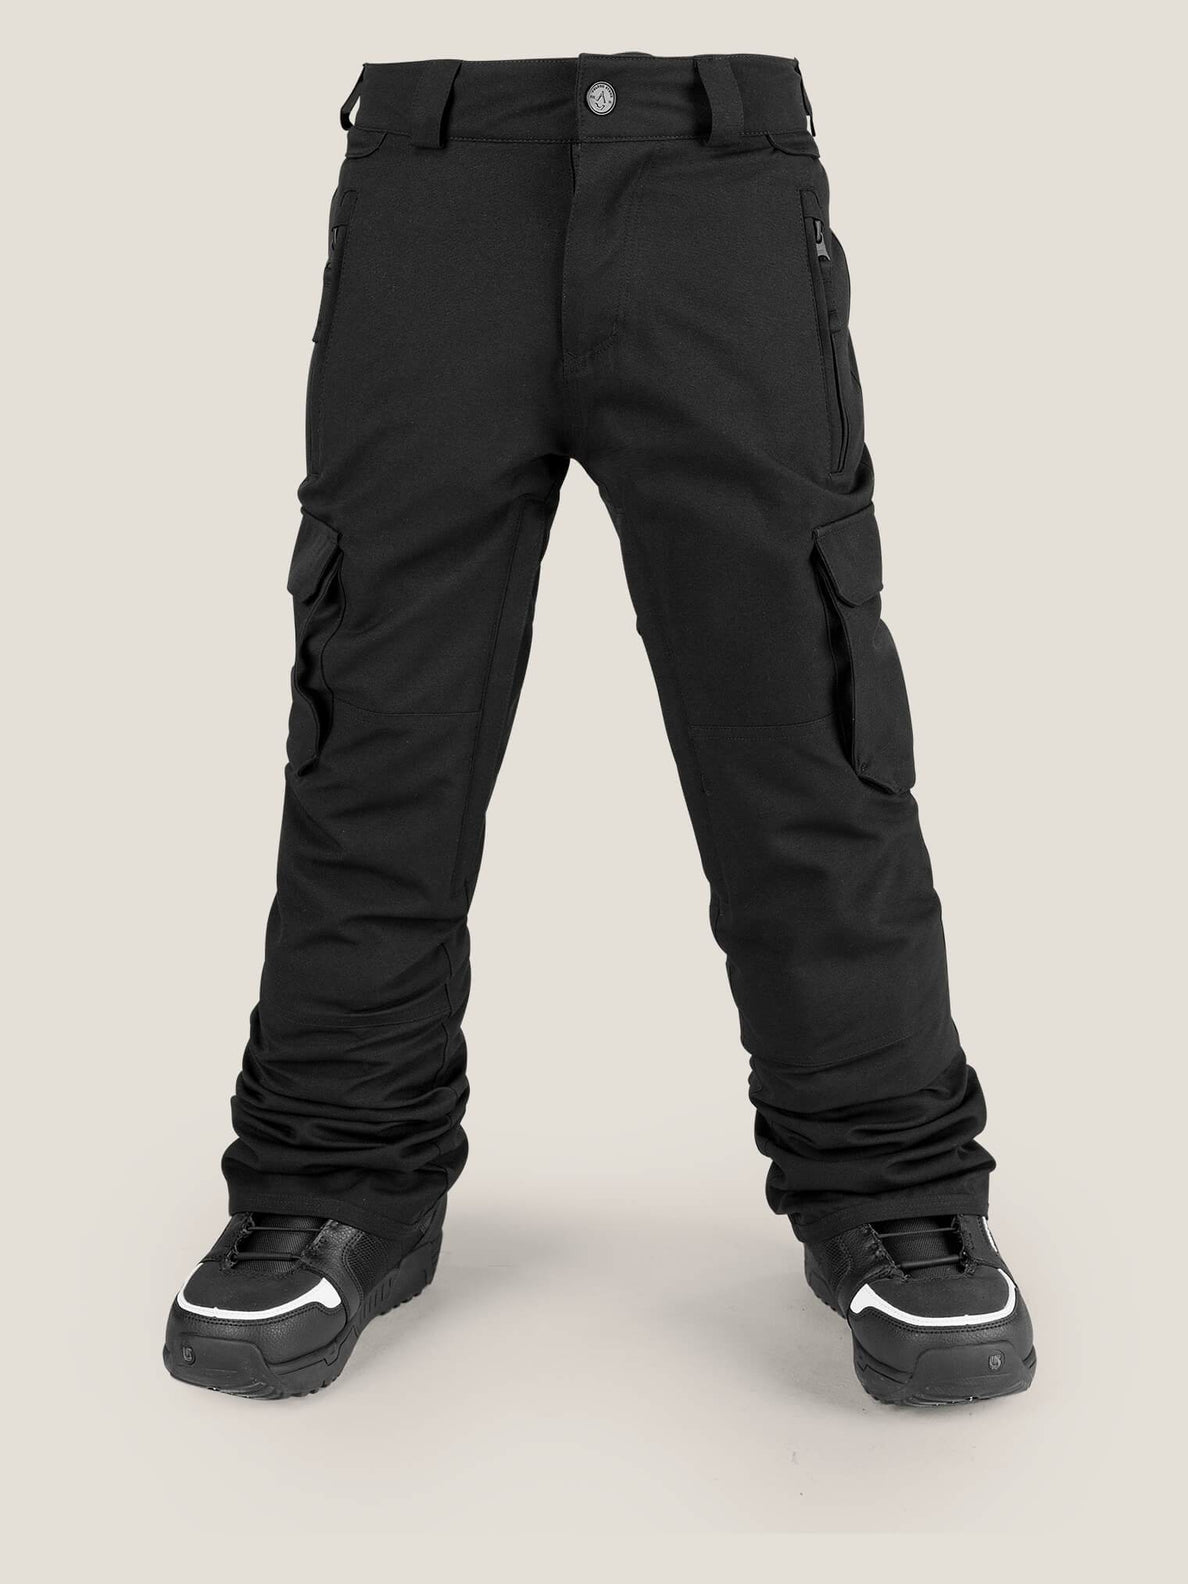 Cargo Insulated Pant In Black, Front View